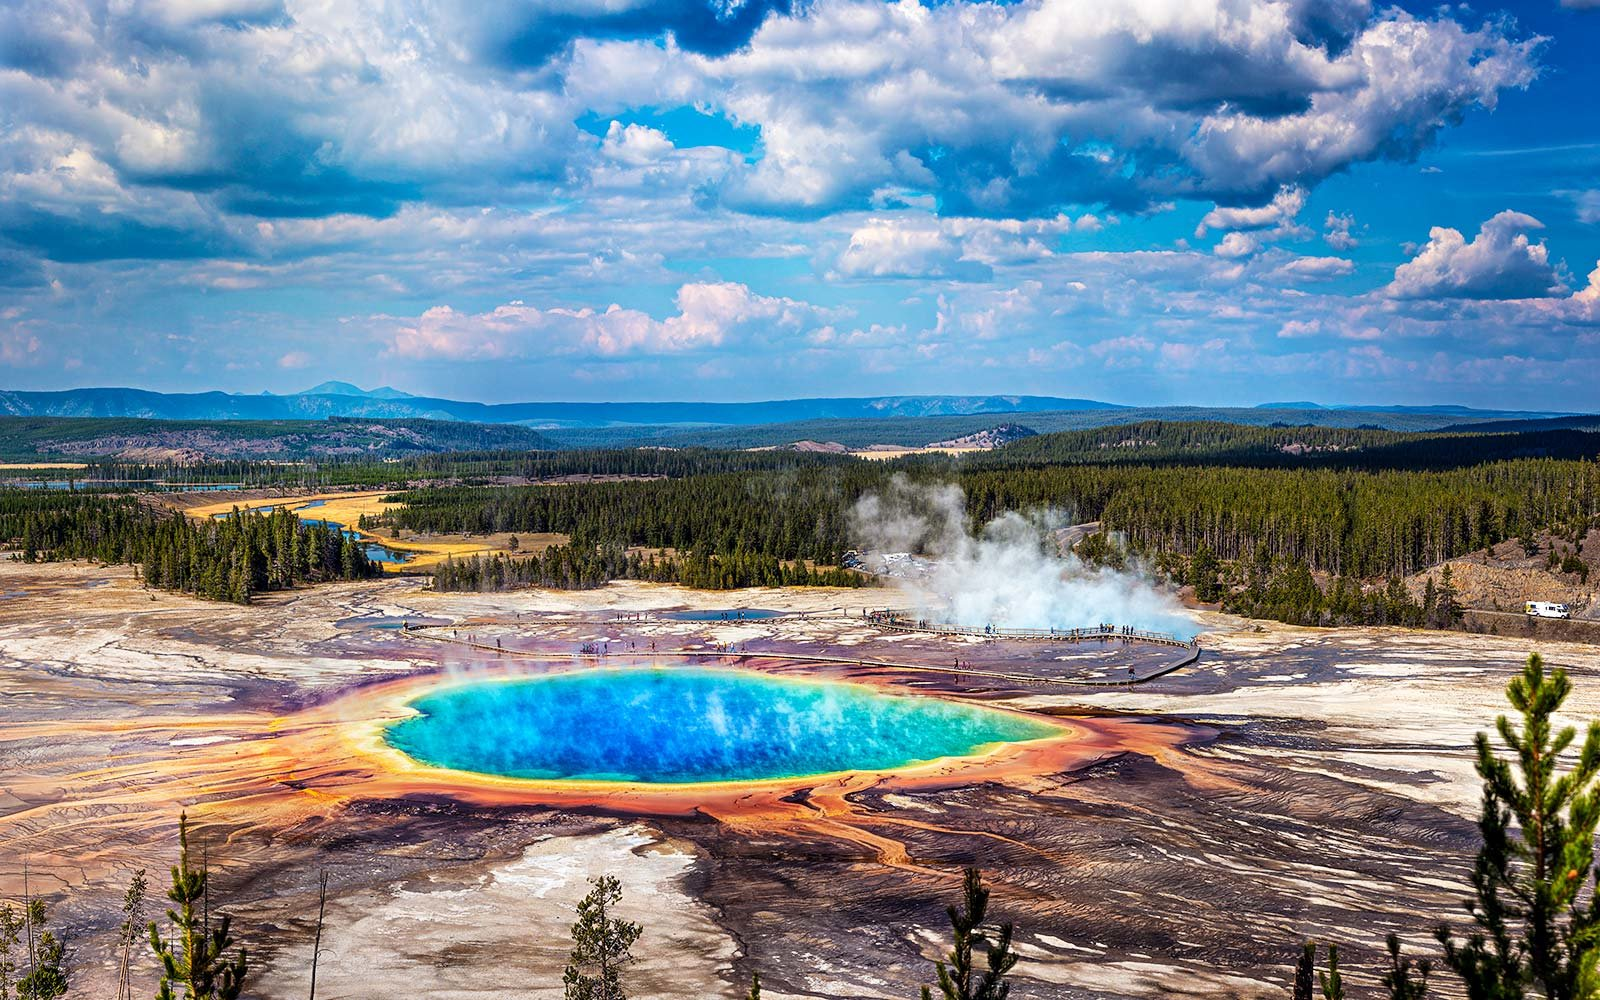 Grand Prismatic Geyser, Yellowstone National Park. A colorful rainbow-colored geothermal prismatic spring in yellowstone national park